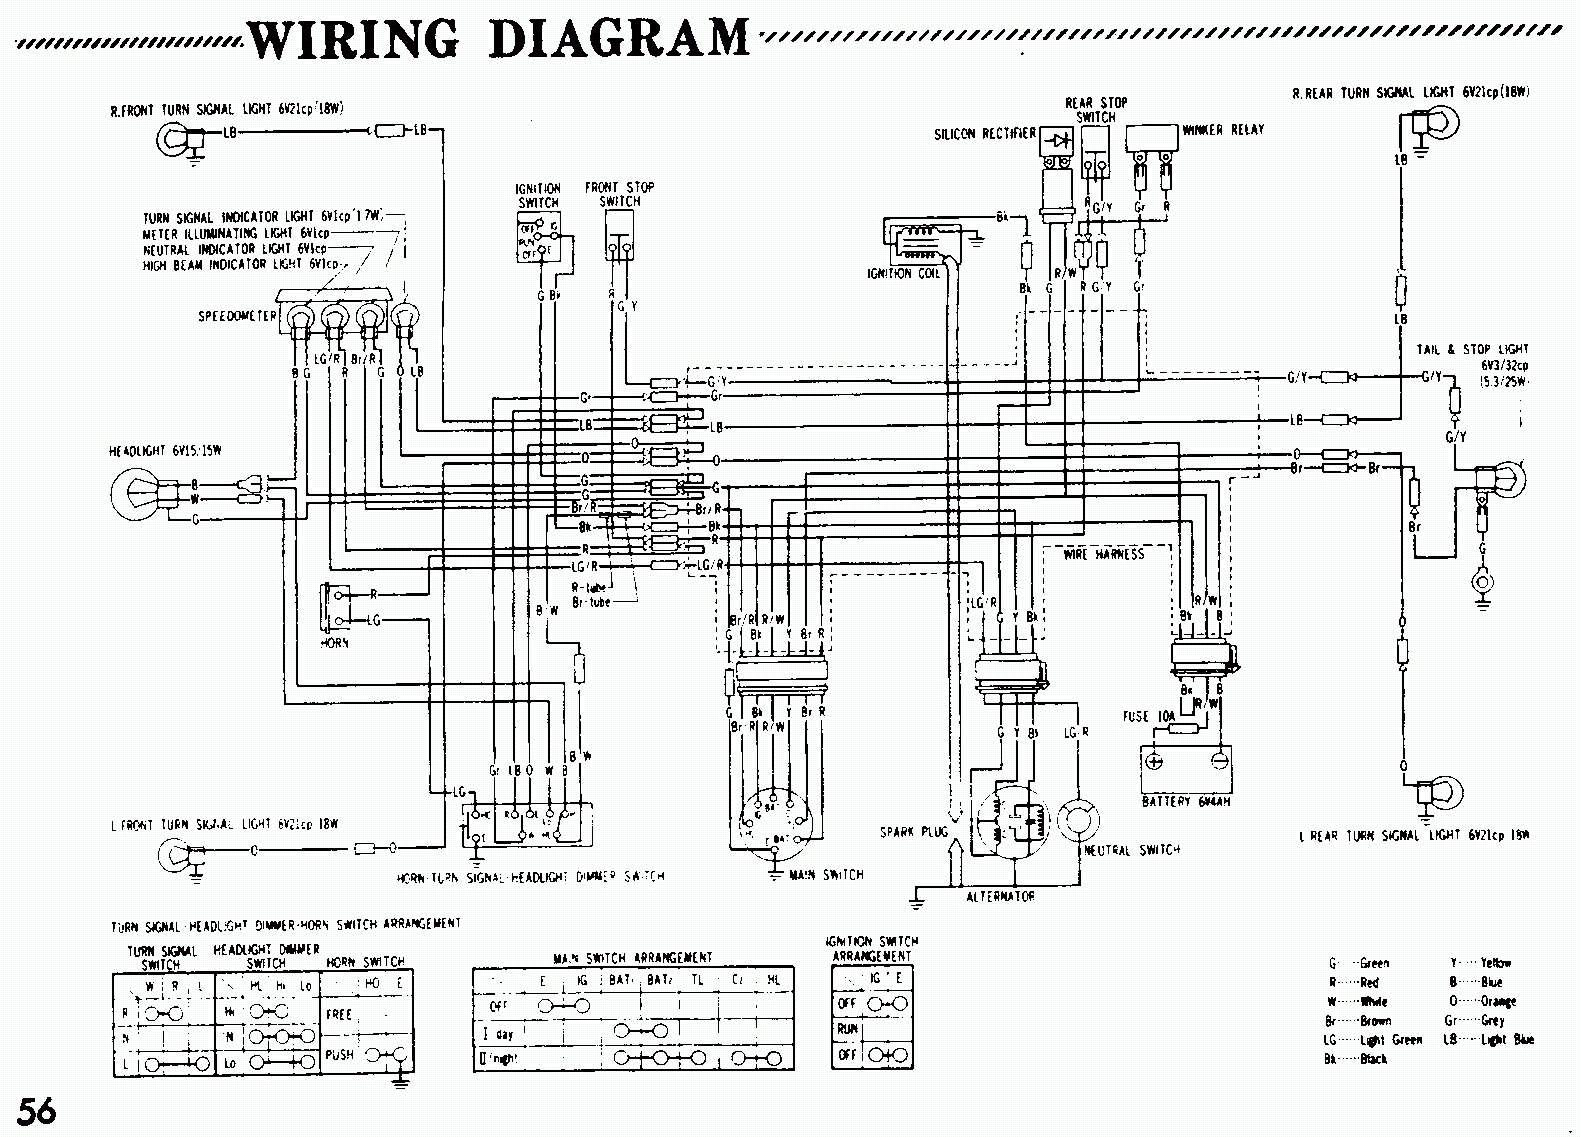 Honda Ct70 Wiring Diagram Detailed Schematics 1970 Fuel Tank